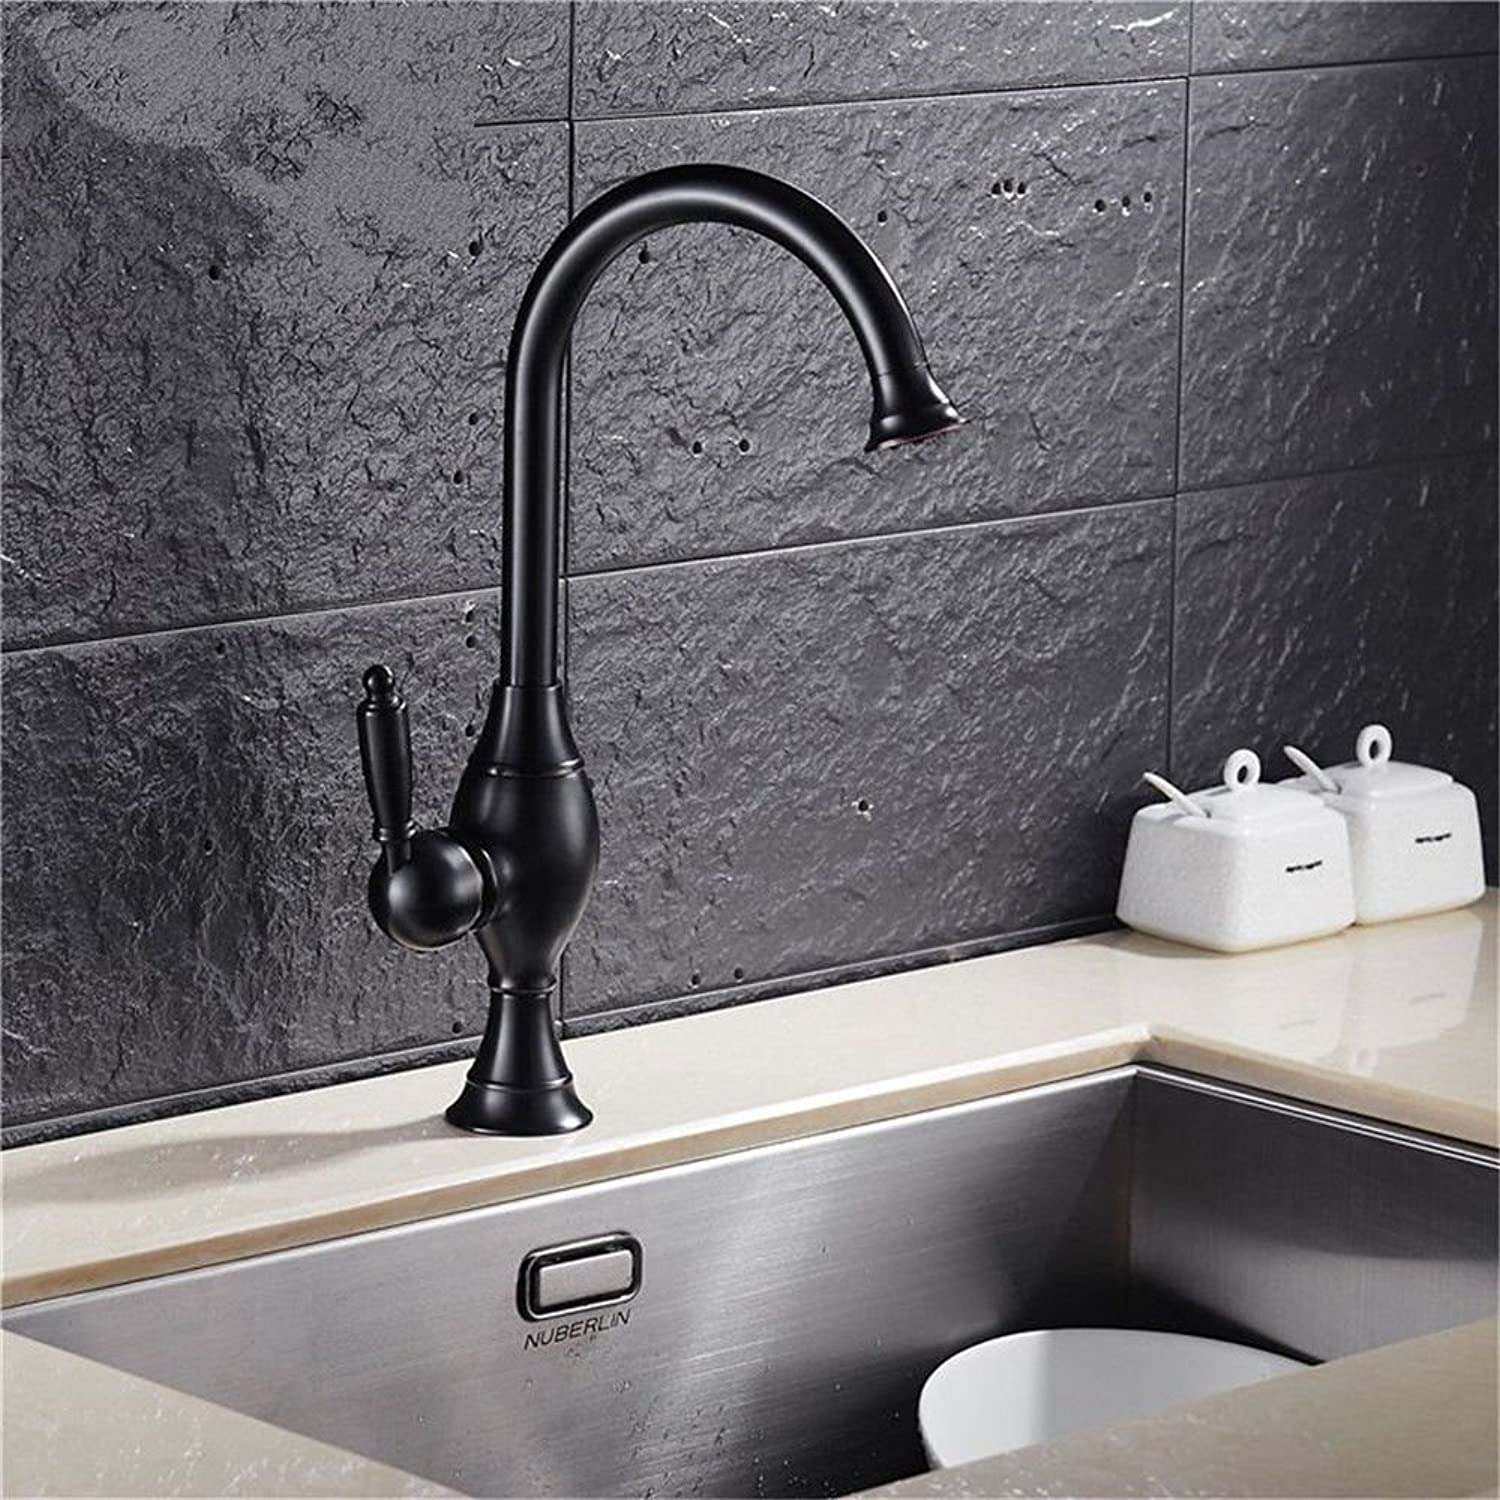 Commercial Single Lever Pull Down Kitchen Sink Faucet Brass Constructed Polished European Retro Copper Paint Hot and Cold Kitchen Sink Faucet Sink Faucet